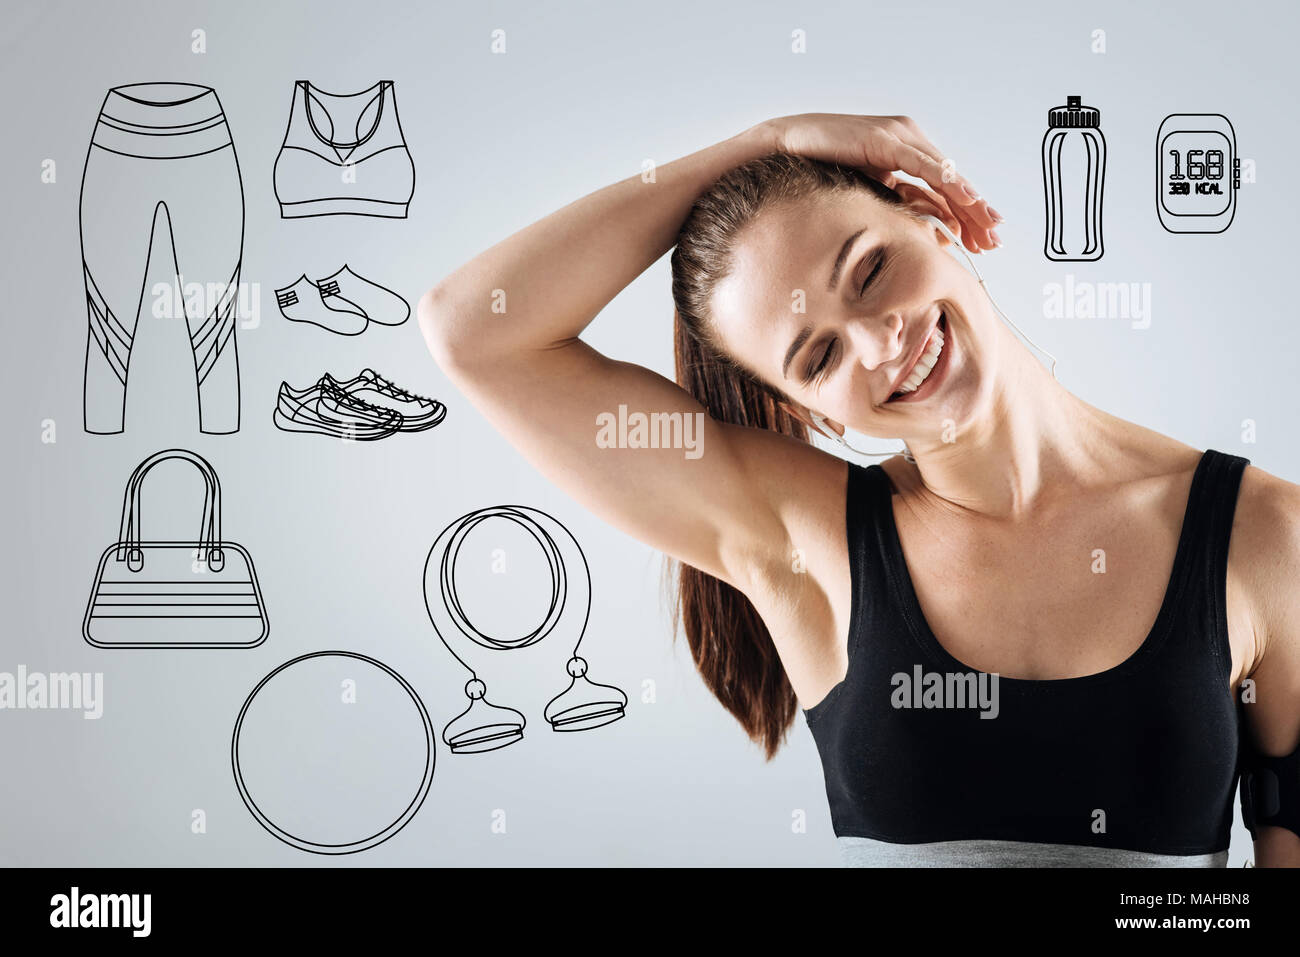 Cheerful woman bending her head and smiling while training - Stock Image